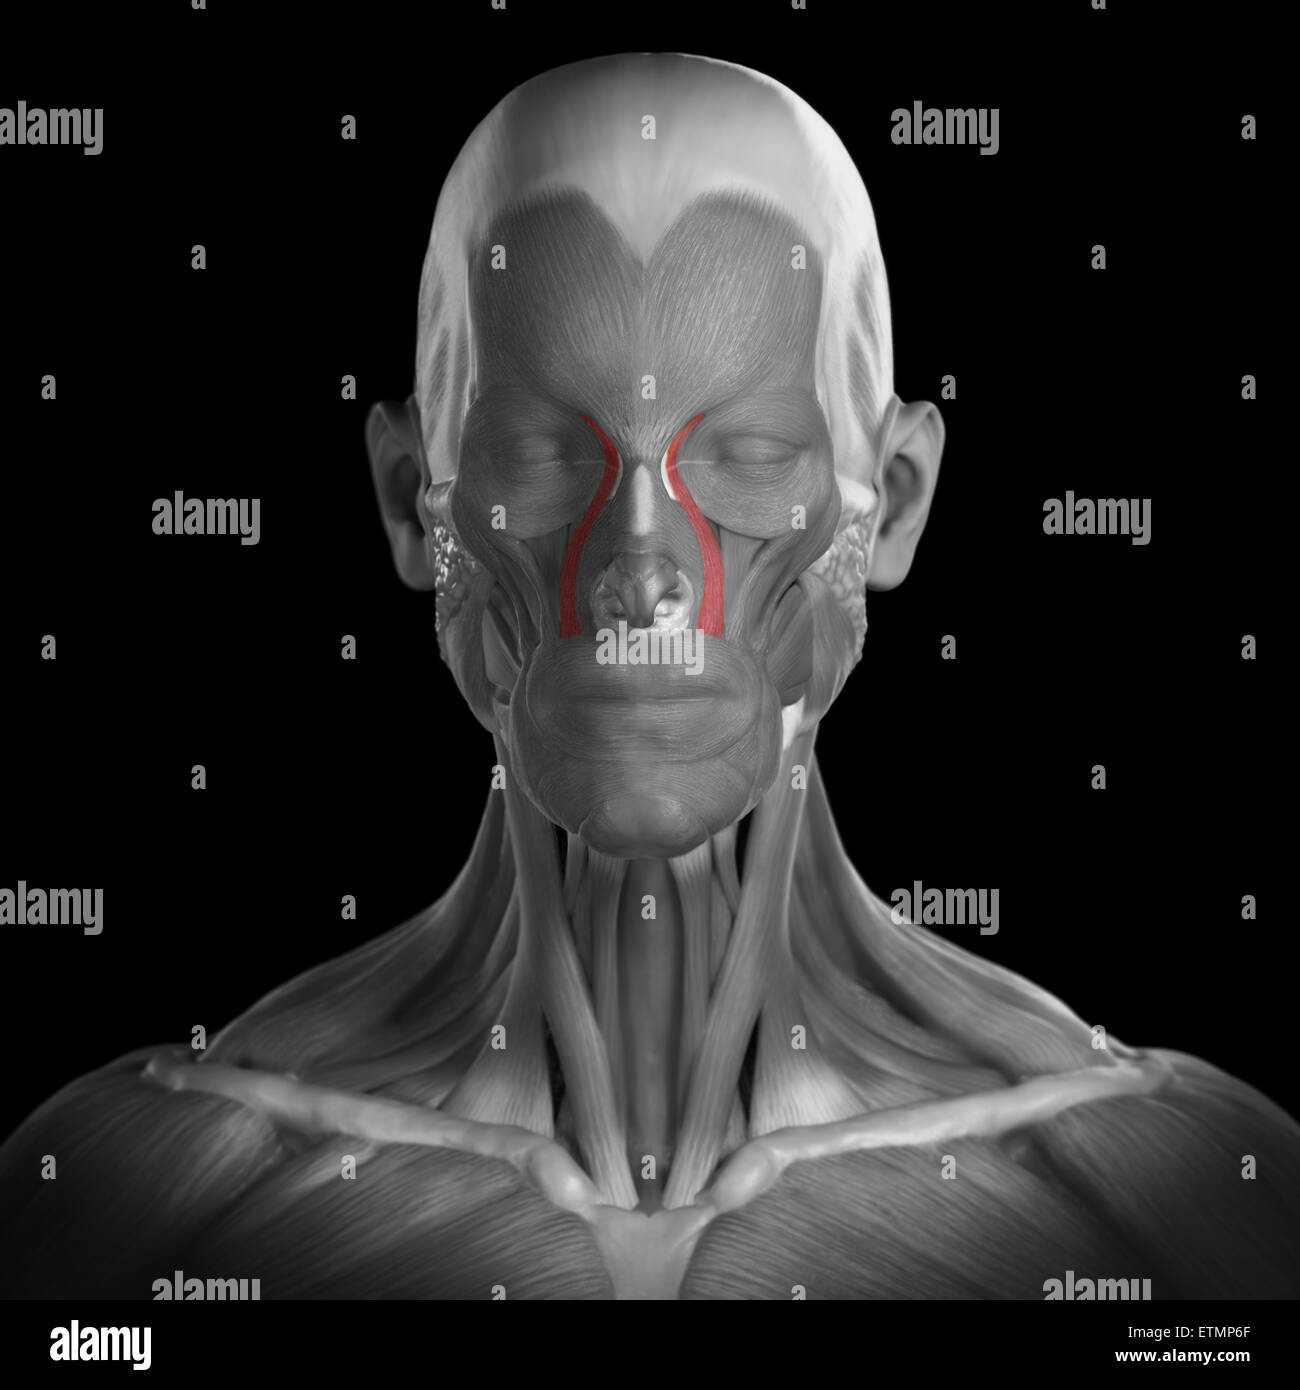 Conceptual image of the muscles of the face with the levator labii superioris alaeque nasi muscles highlighted. Stock Photo